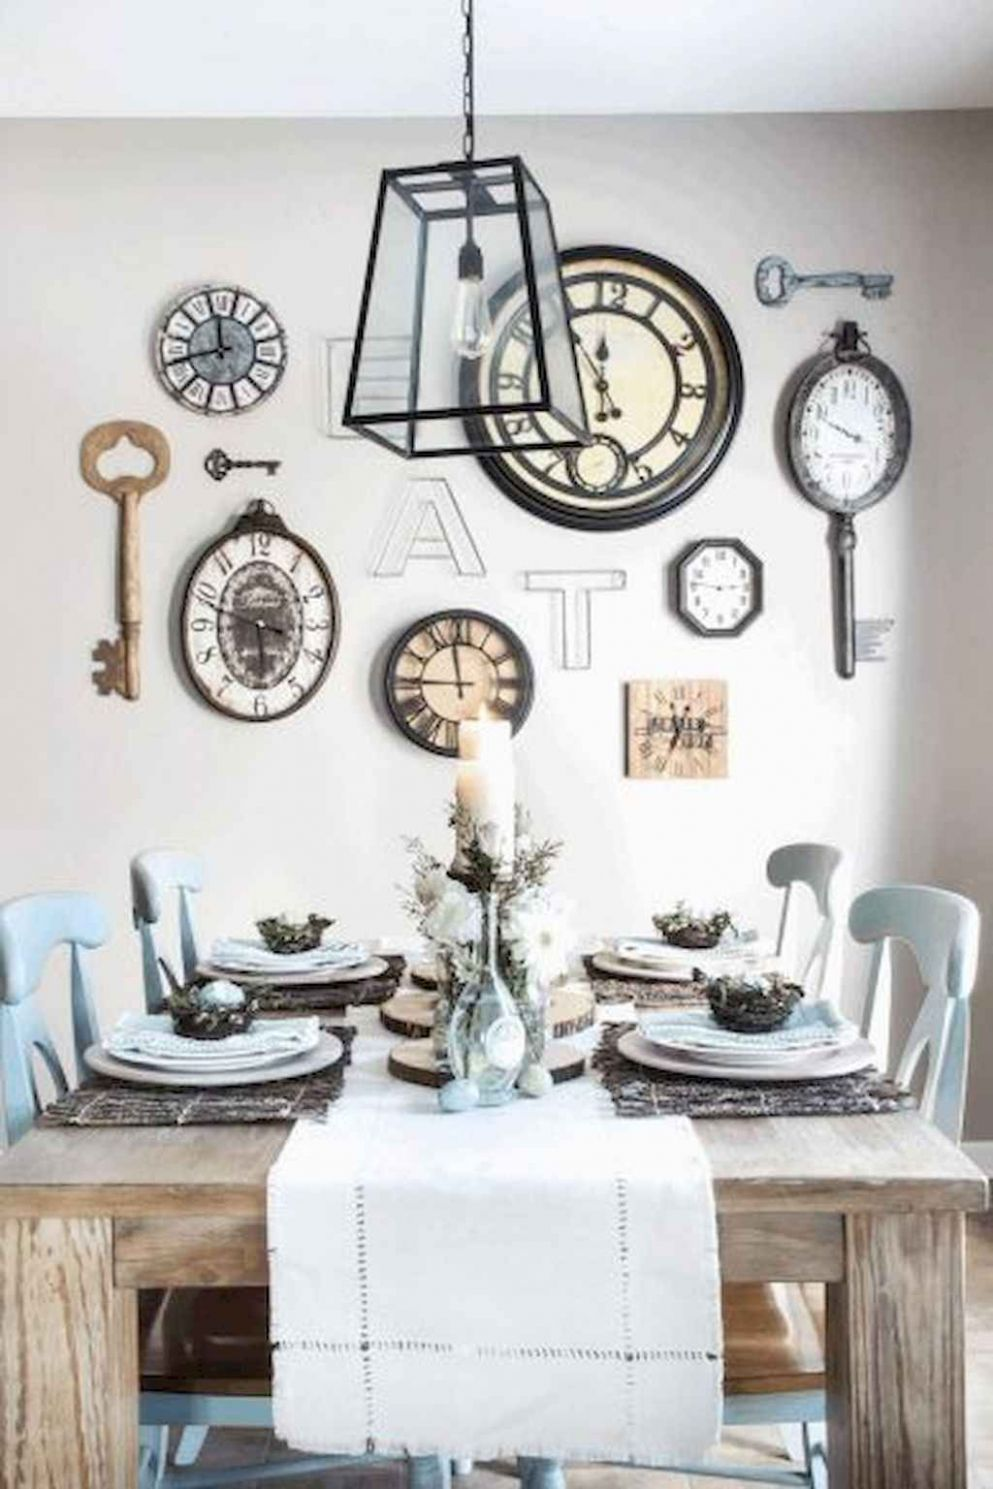 Top 10 Farmhouse Wall Decor Ideas - Page 10 of 10 - Afifah ..